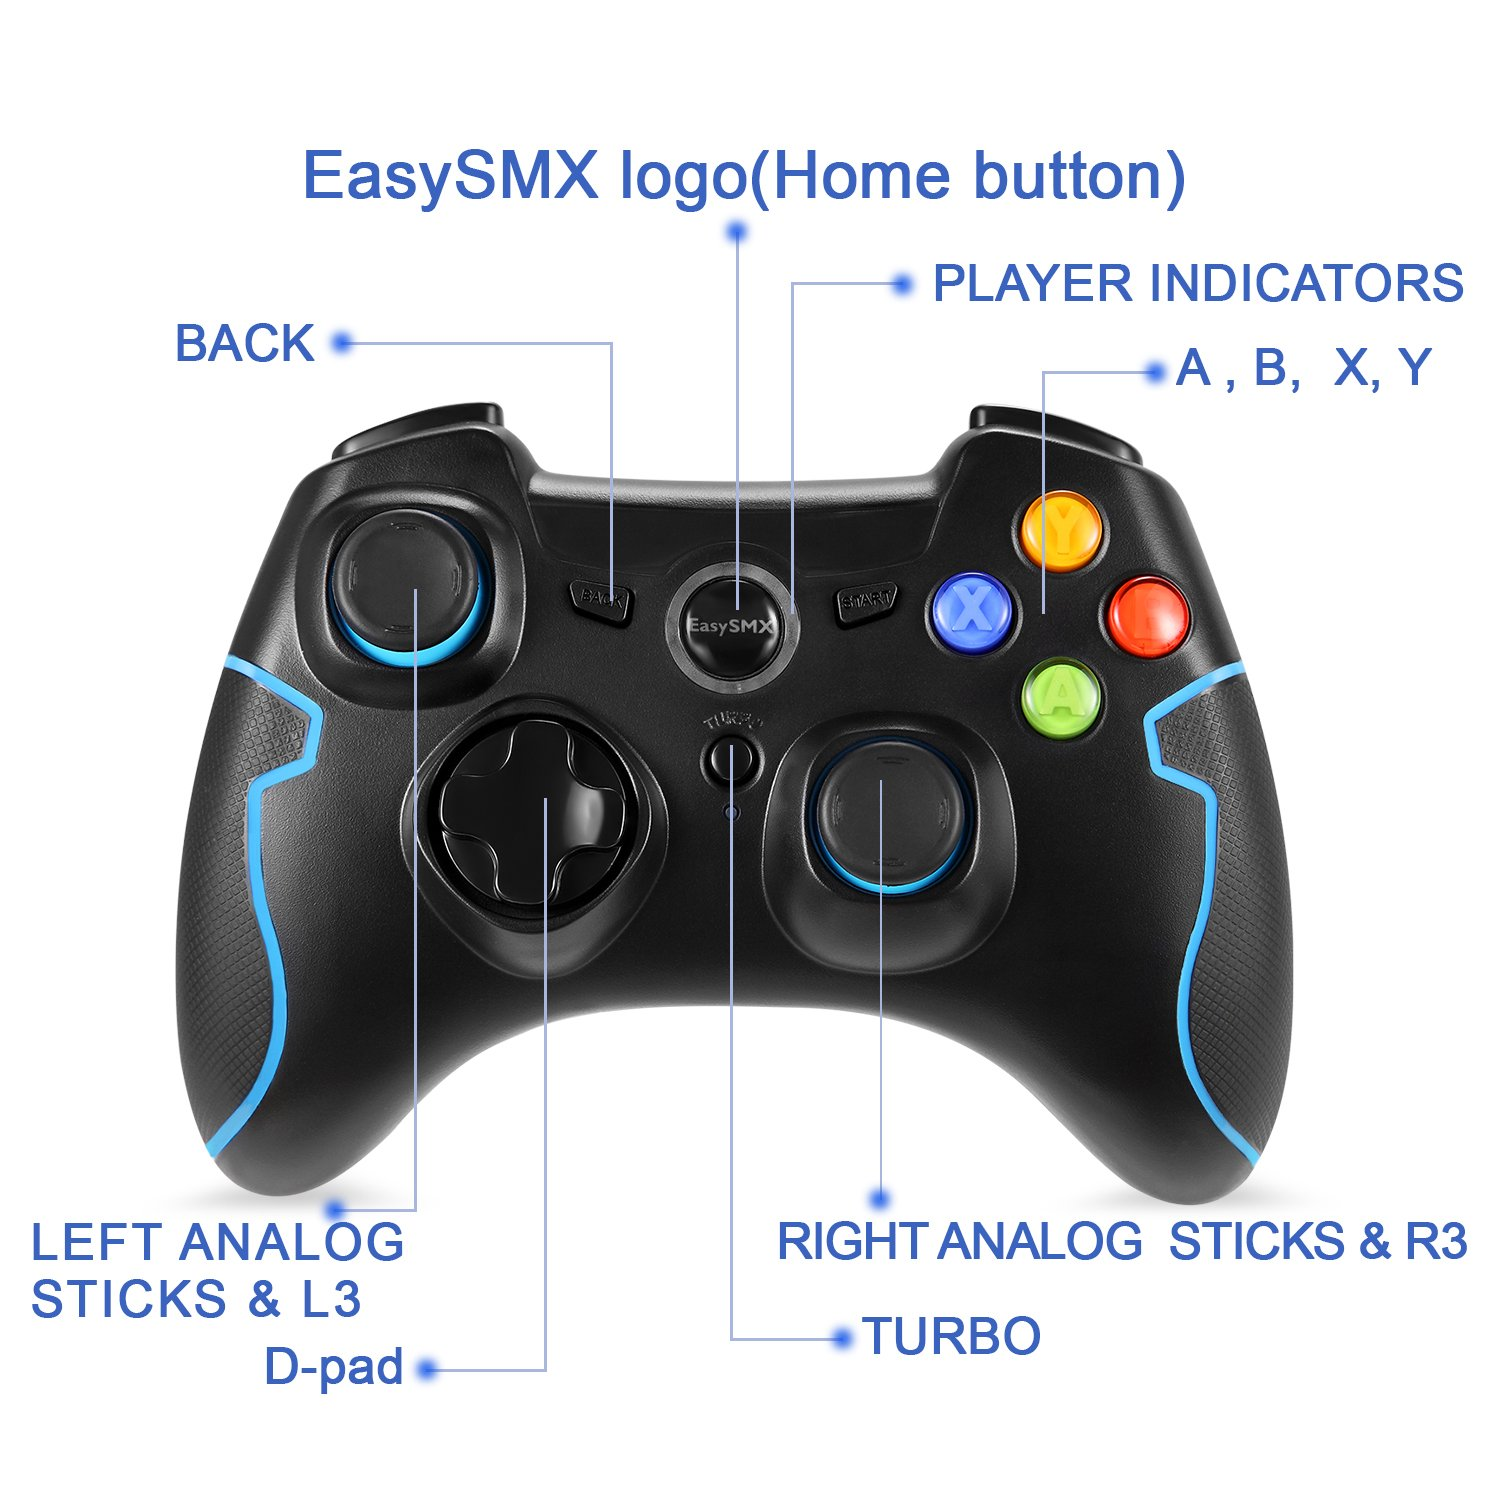 Wireless Pc Game Remotes Wire Data Schema With Foldback Current Limiting Circuit Diagram Tradeoficcom Galleon 2 4g Ps3 Controller Easysmx Ebay Gamepad